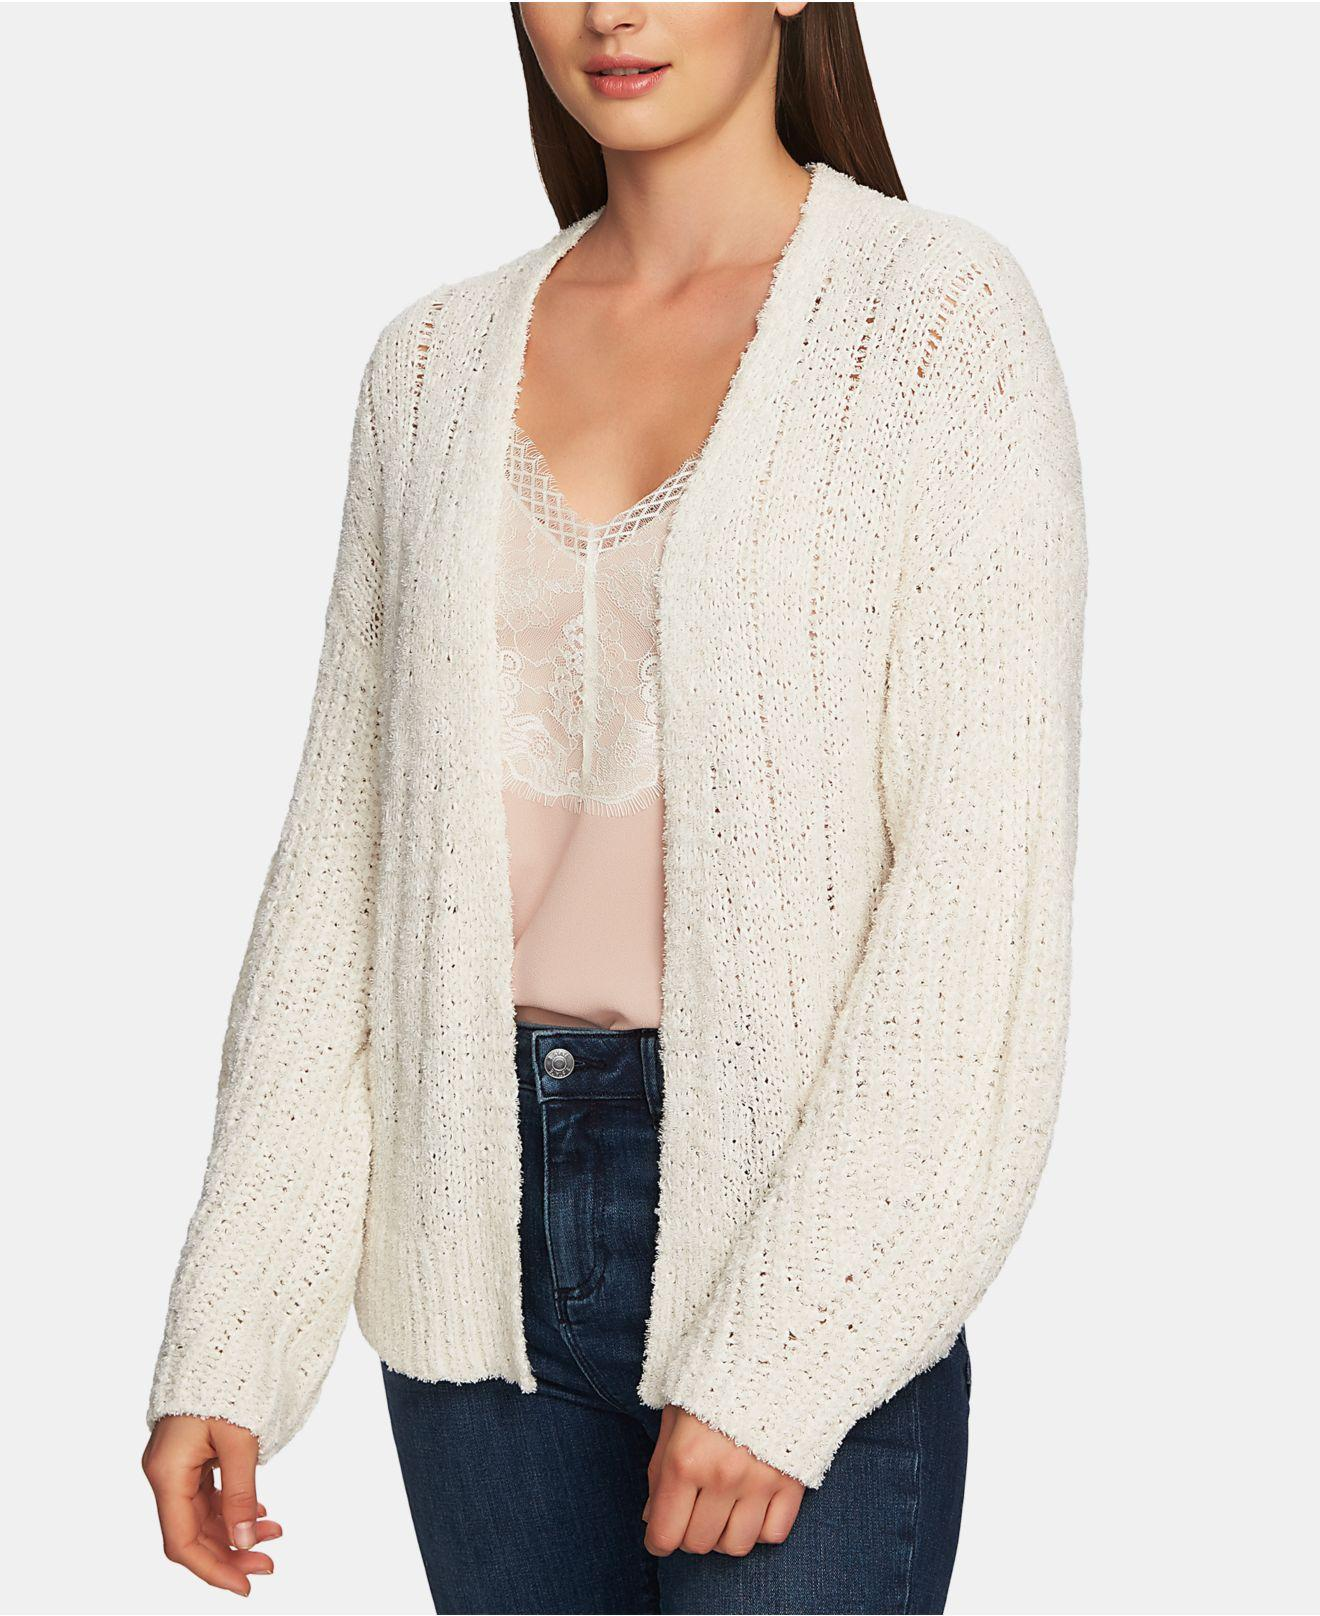 c9b685b24a3 Lyst - 1.STATE Long-sleeve Pointelle Open Cardigan in White